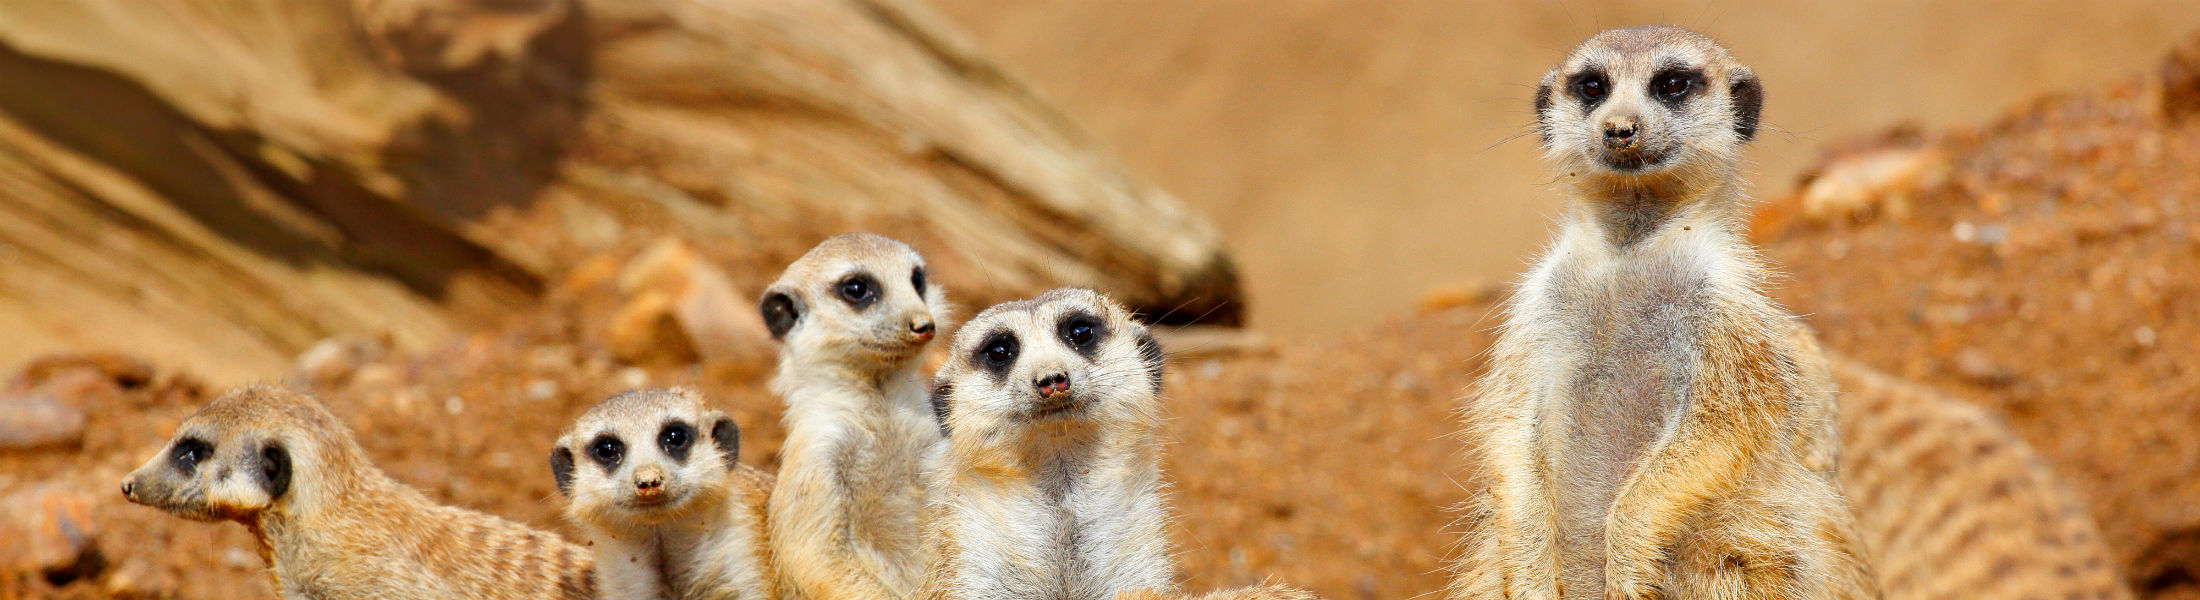 Meerkat family seen on a beach & safari holiday